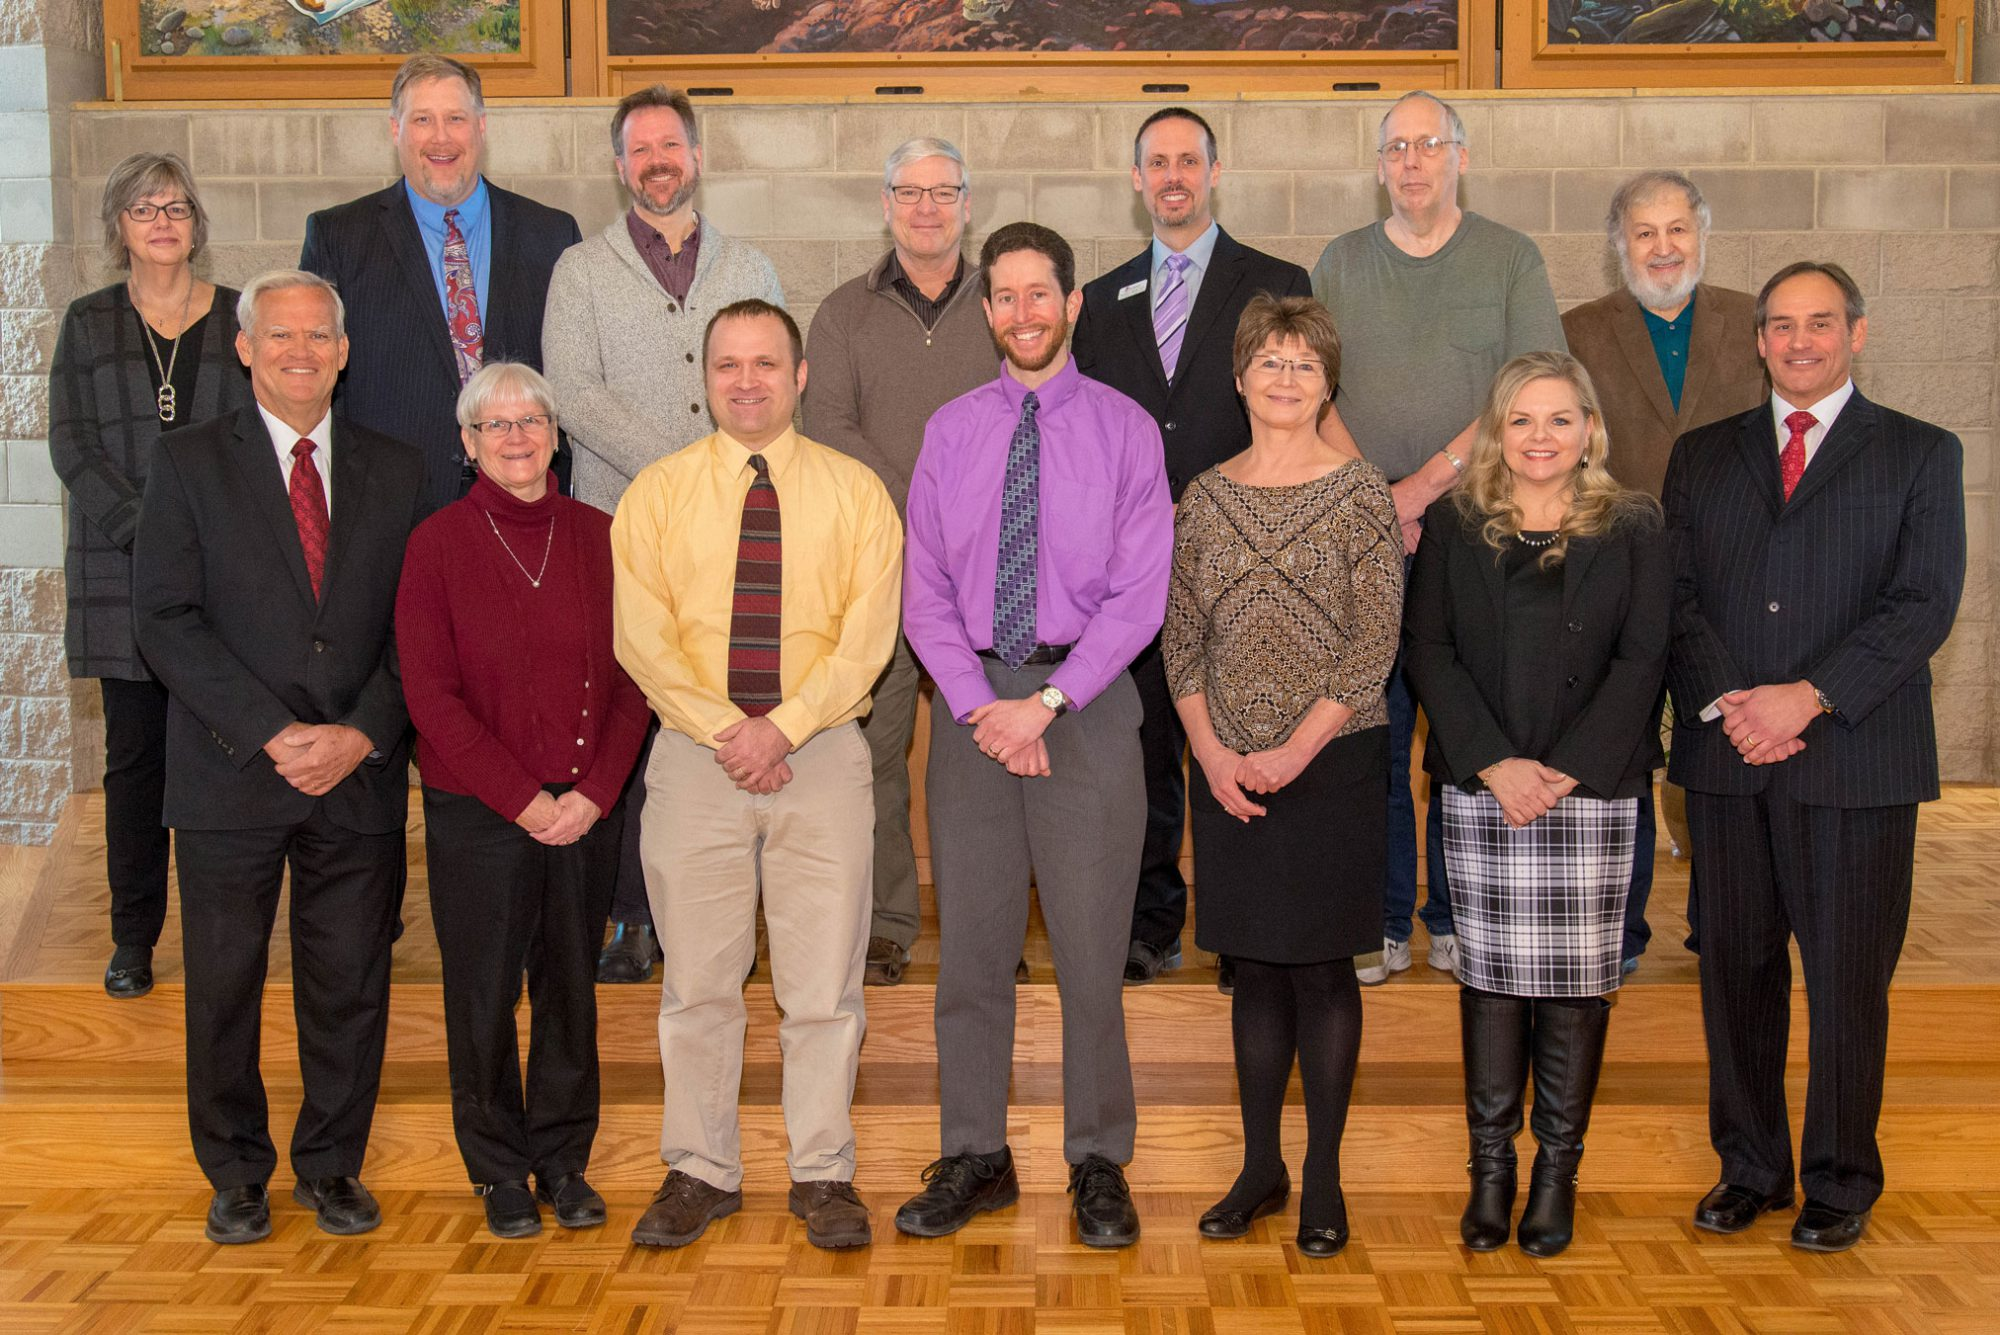 2018 Years of Service Honorees